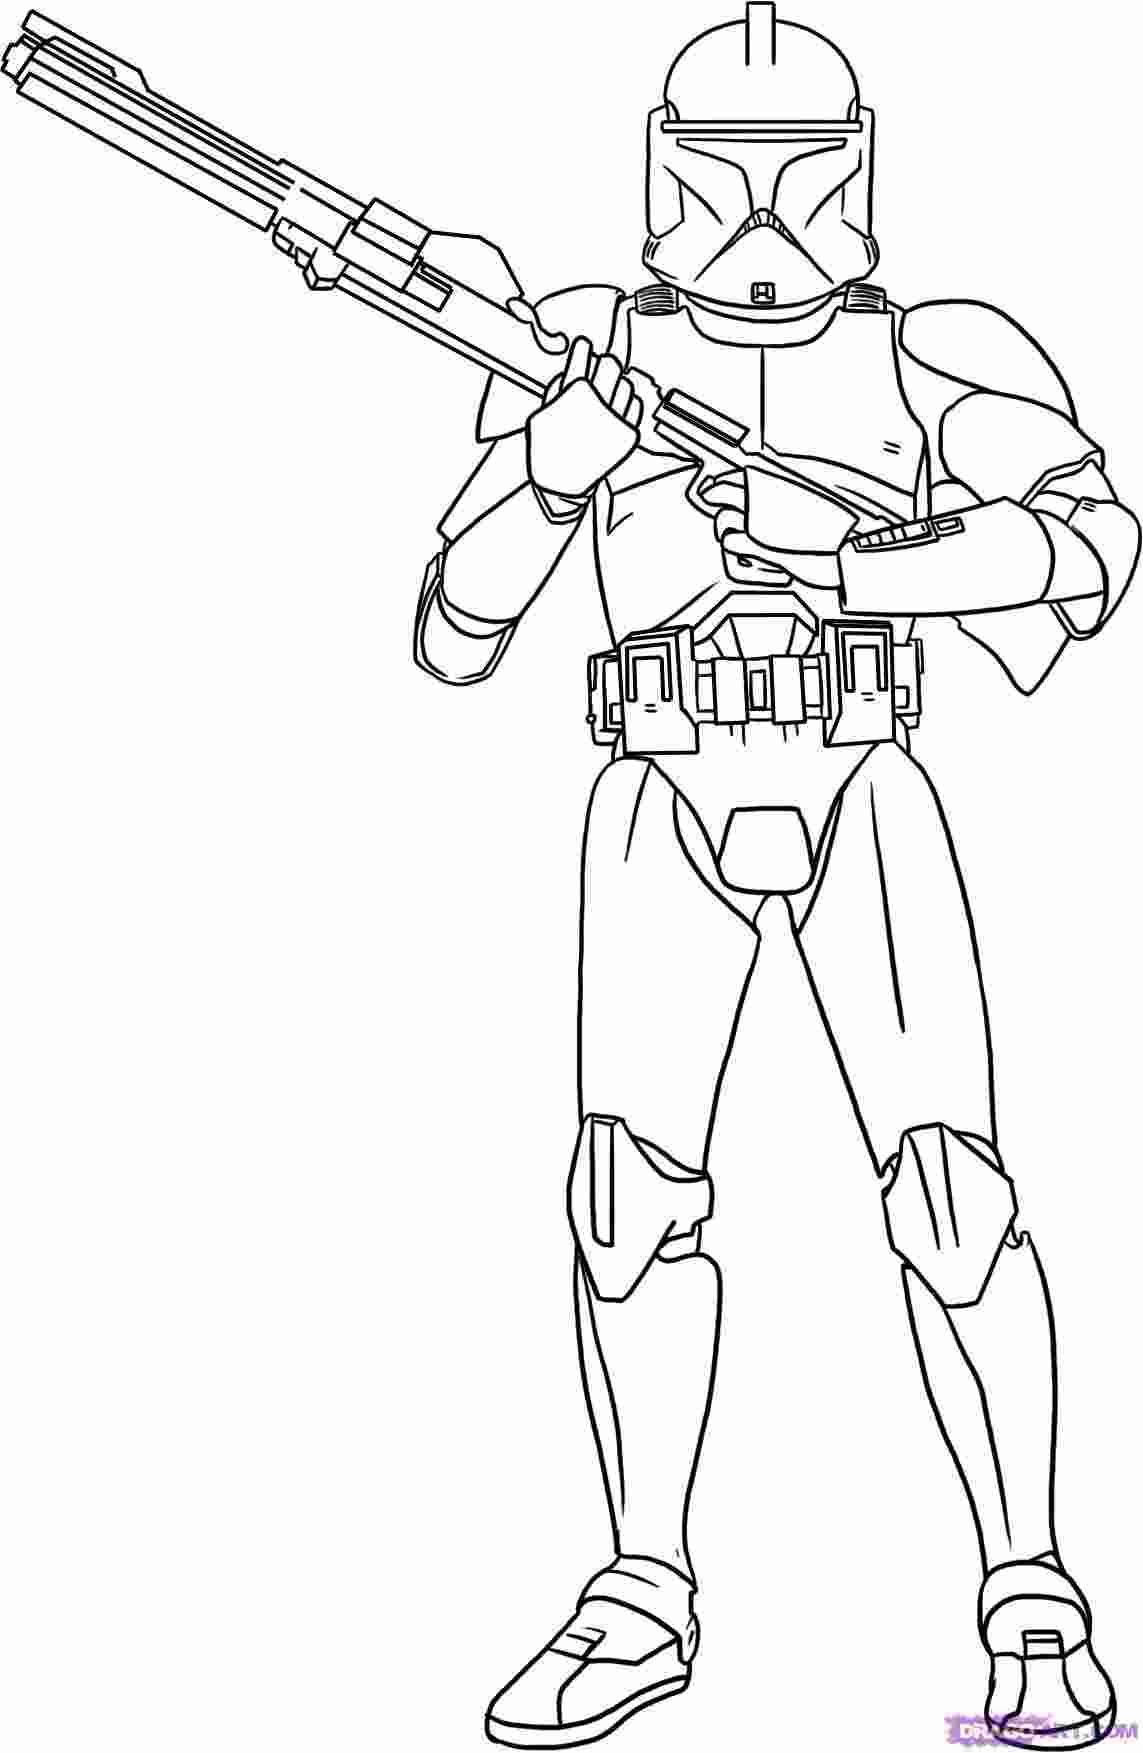 Free Online Star Wars Coloring Pages In 2020 Star Wars Coloring Sheet Star Coloring Pages Star Wars Colors